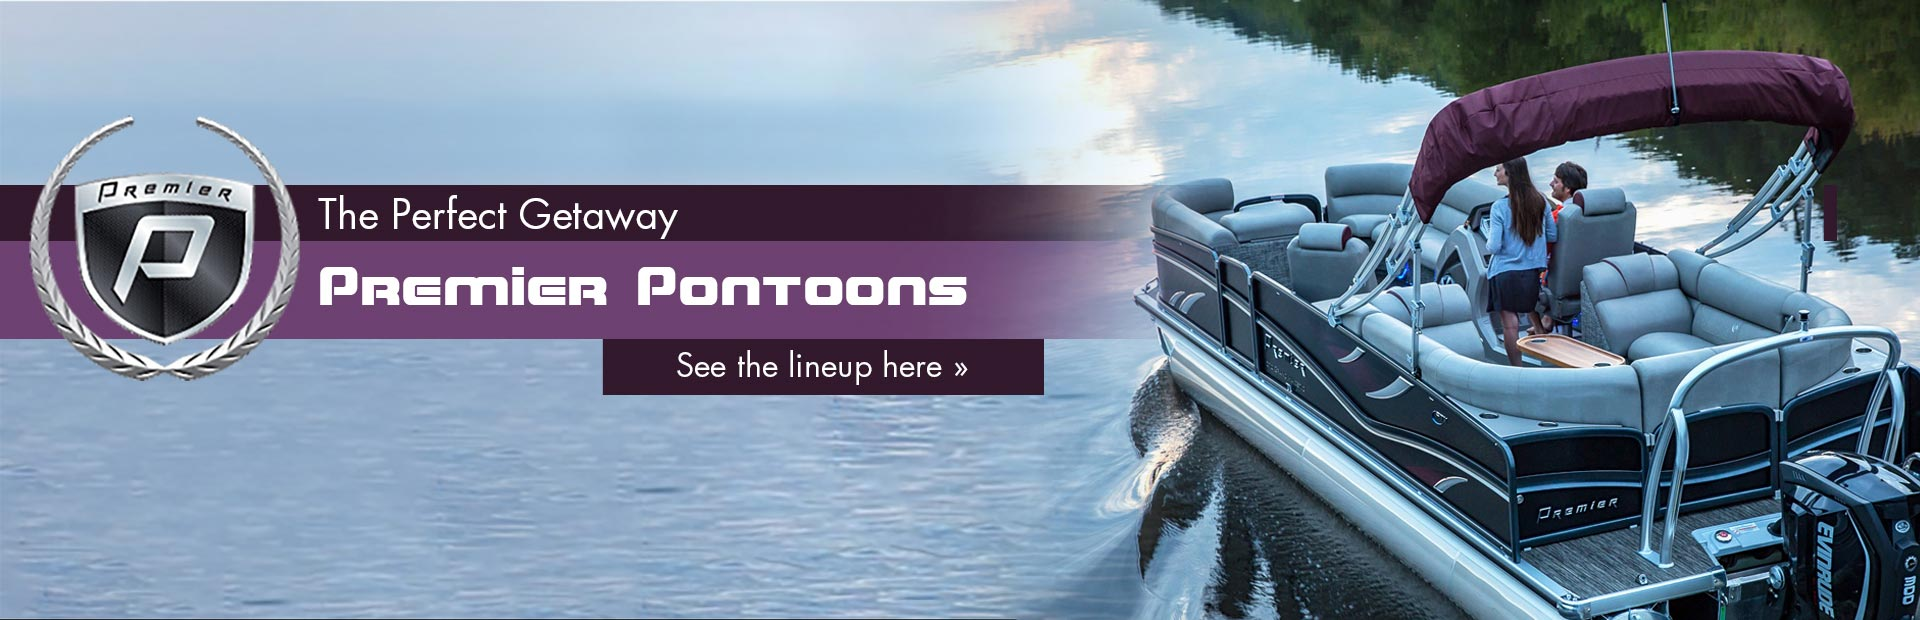 Experience the perfect getaway with Premier pontoons! Click here to see the lineup.